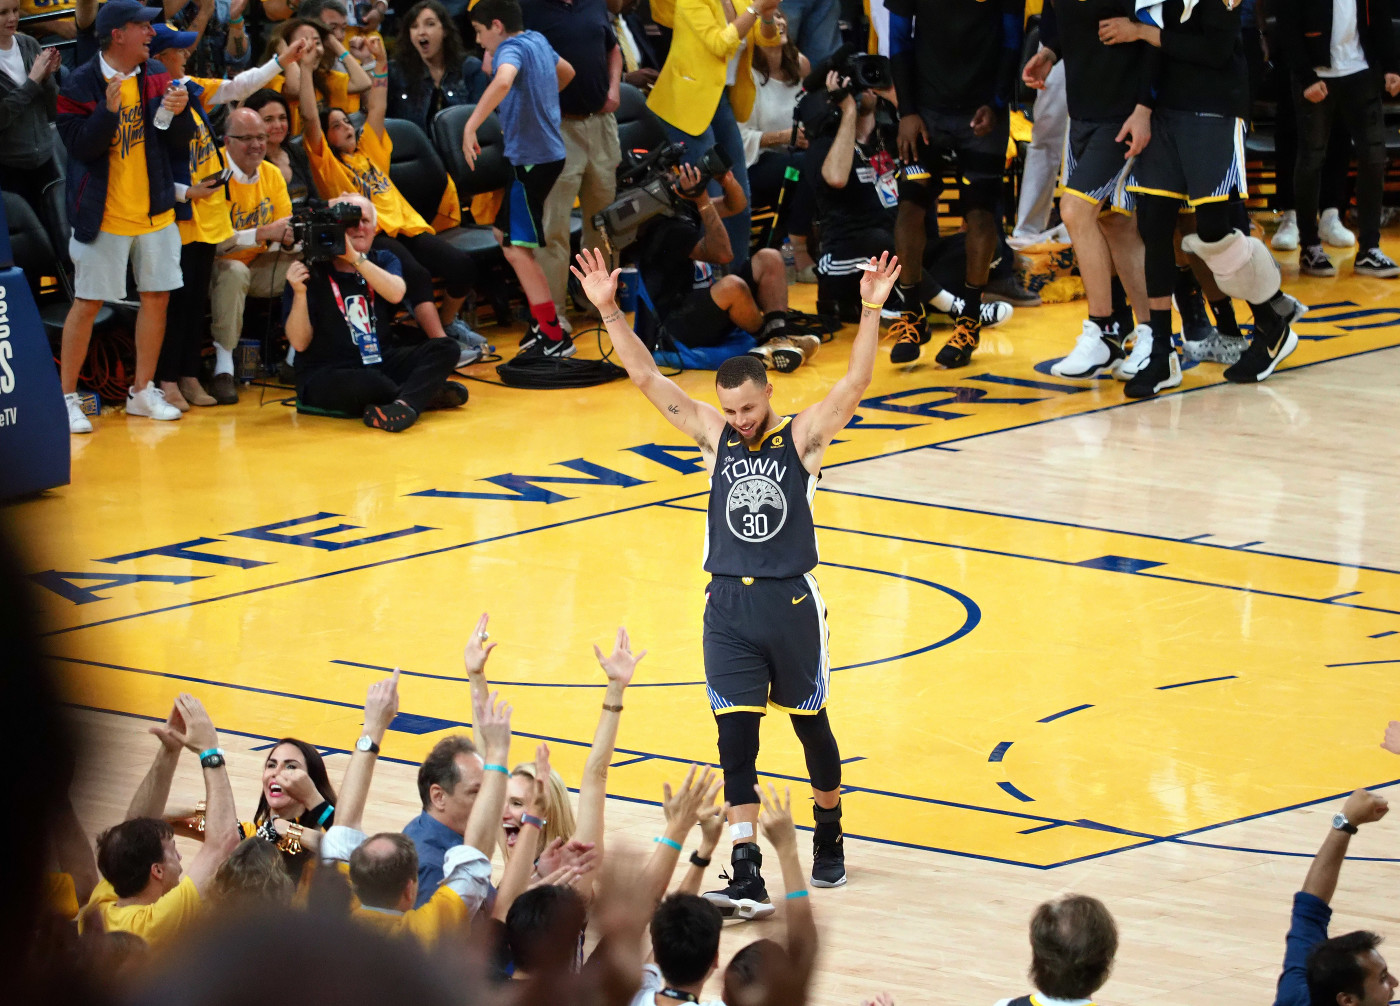 Steph Curry Warriors Game 2 NBA Finals 2018